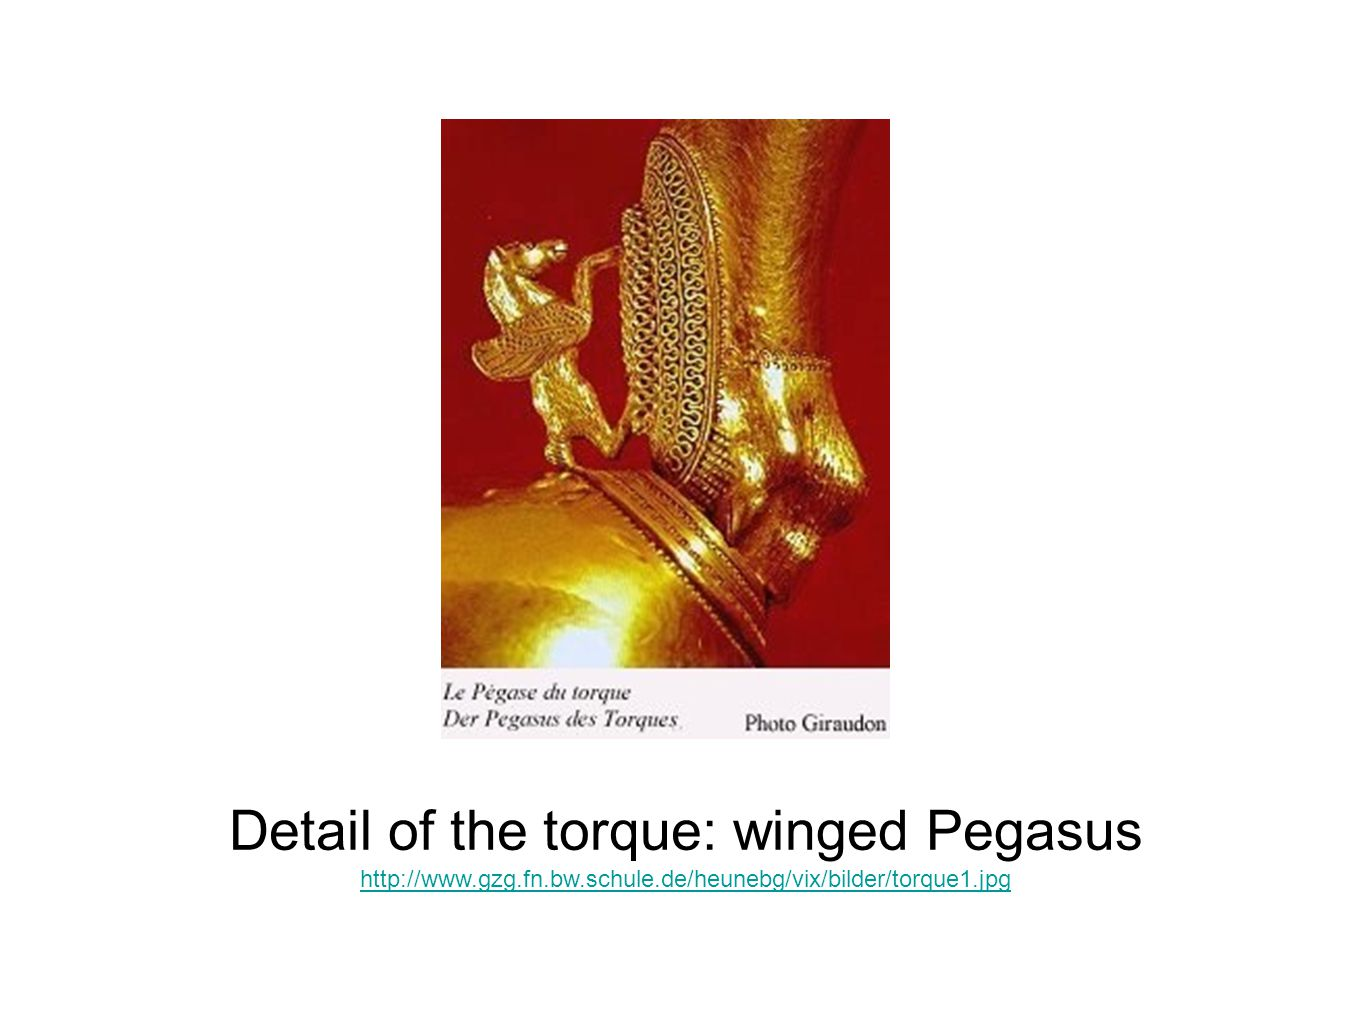 Detail of the torque: winged Pegasus